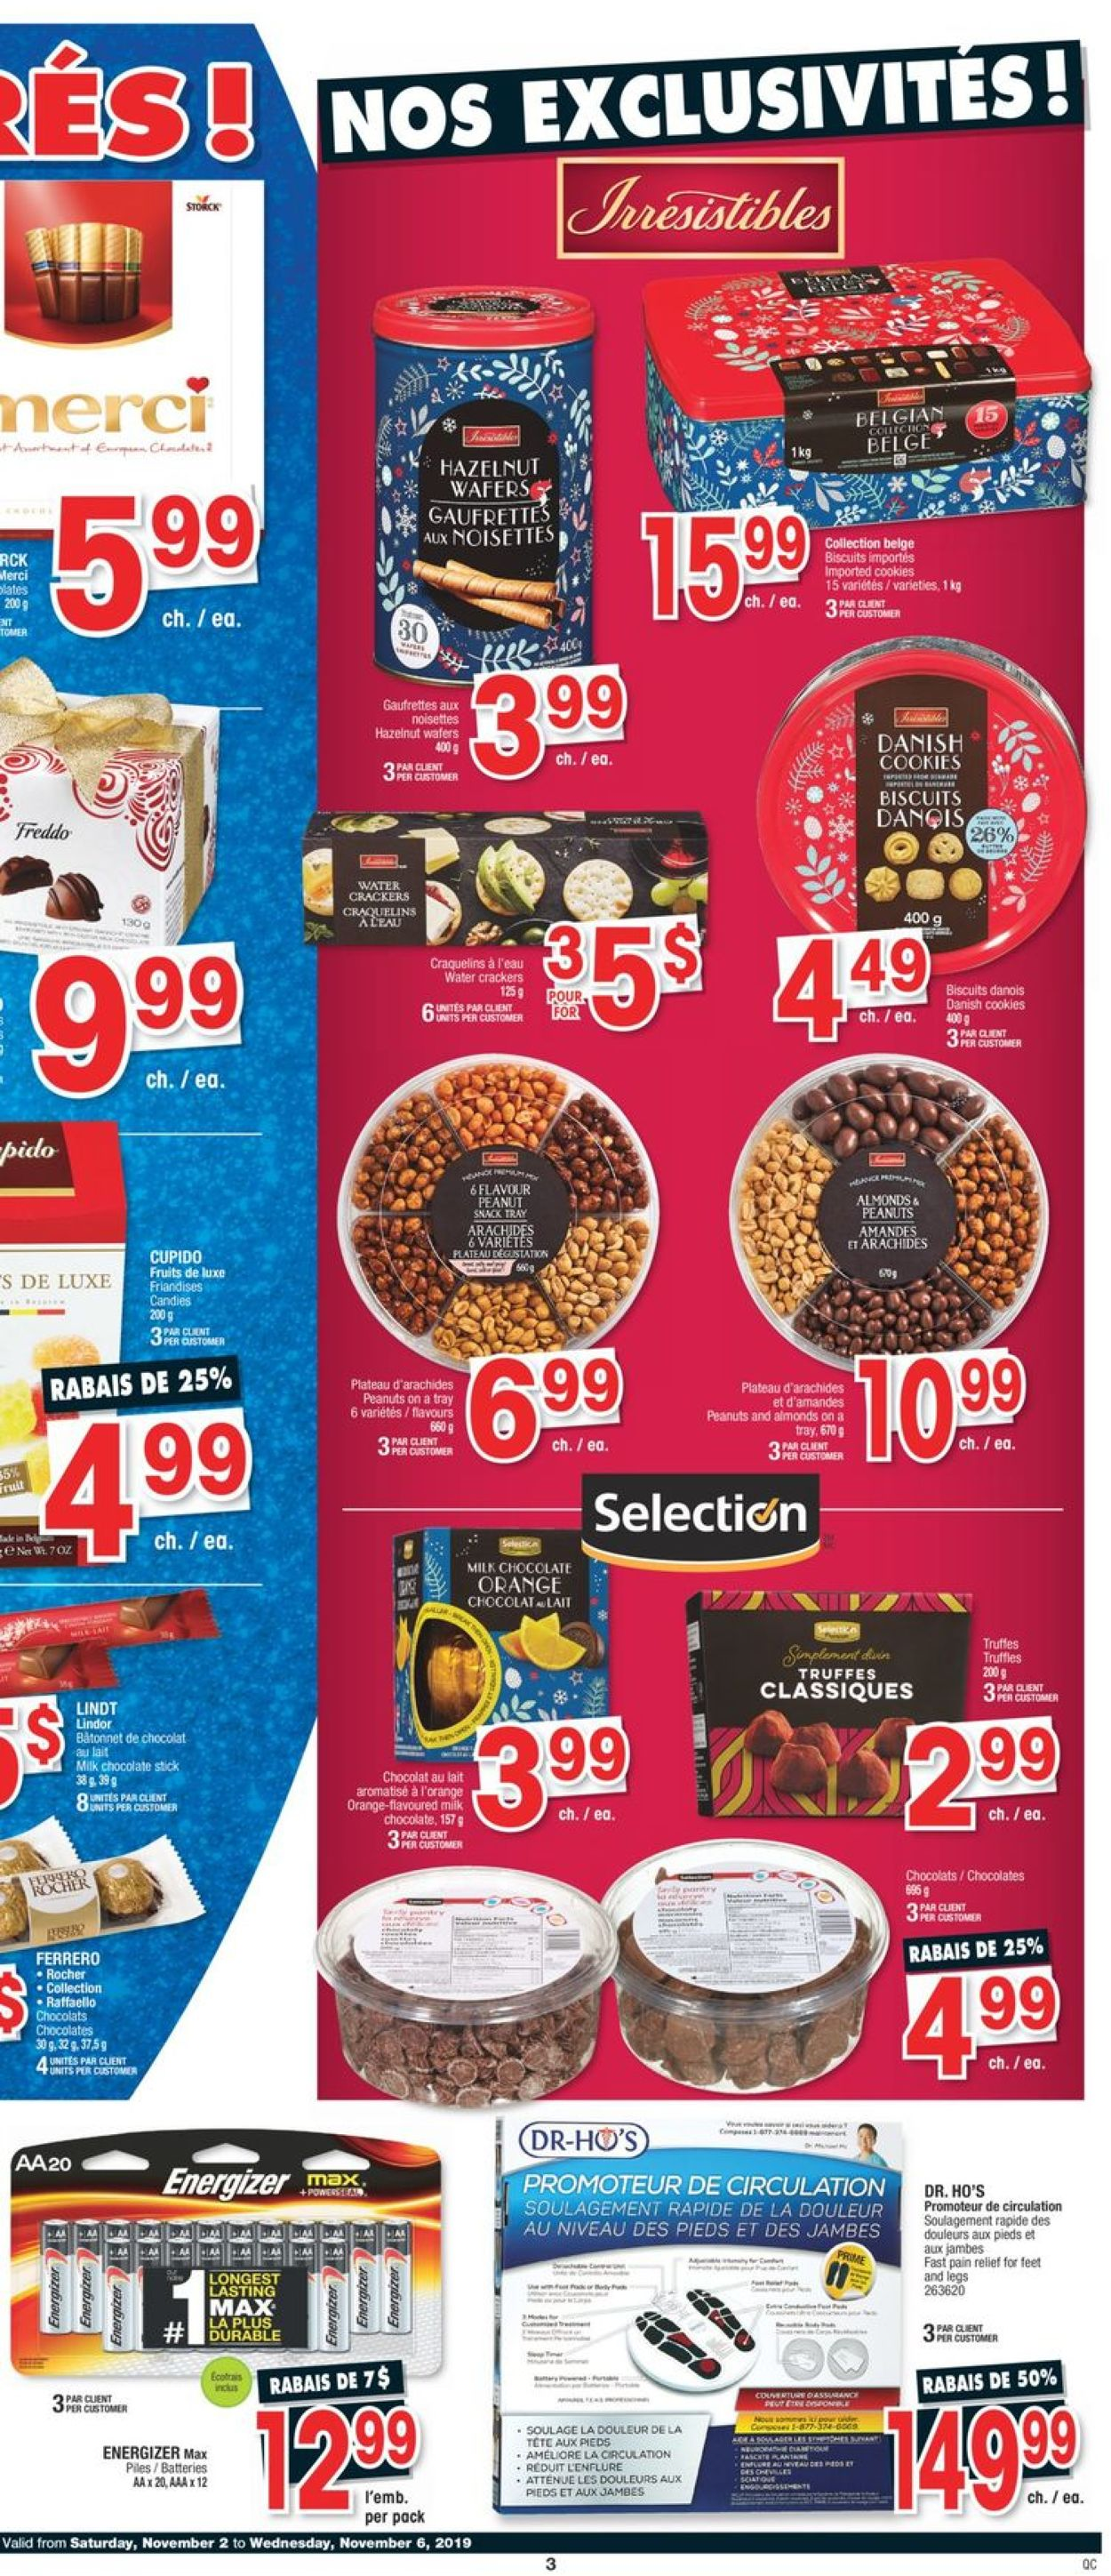 Jean Coutu Flyer - 11/02-11/06/2019 (Page 3)